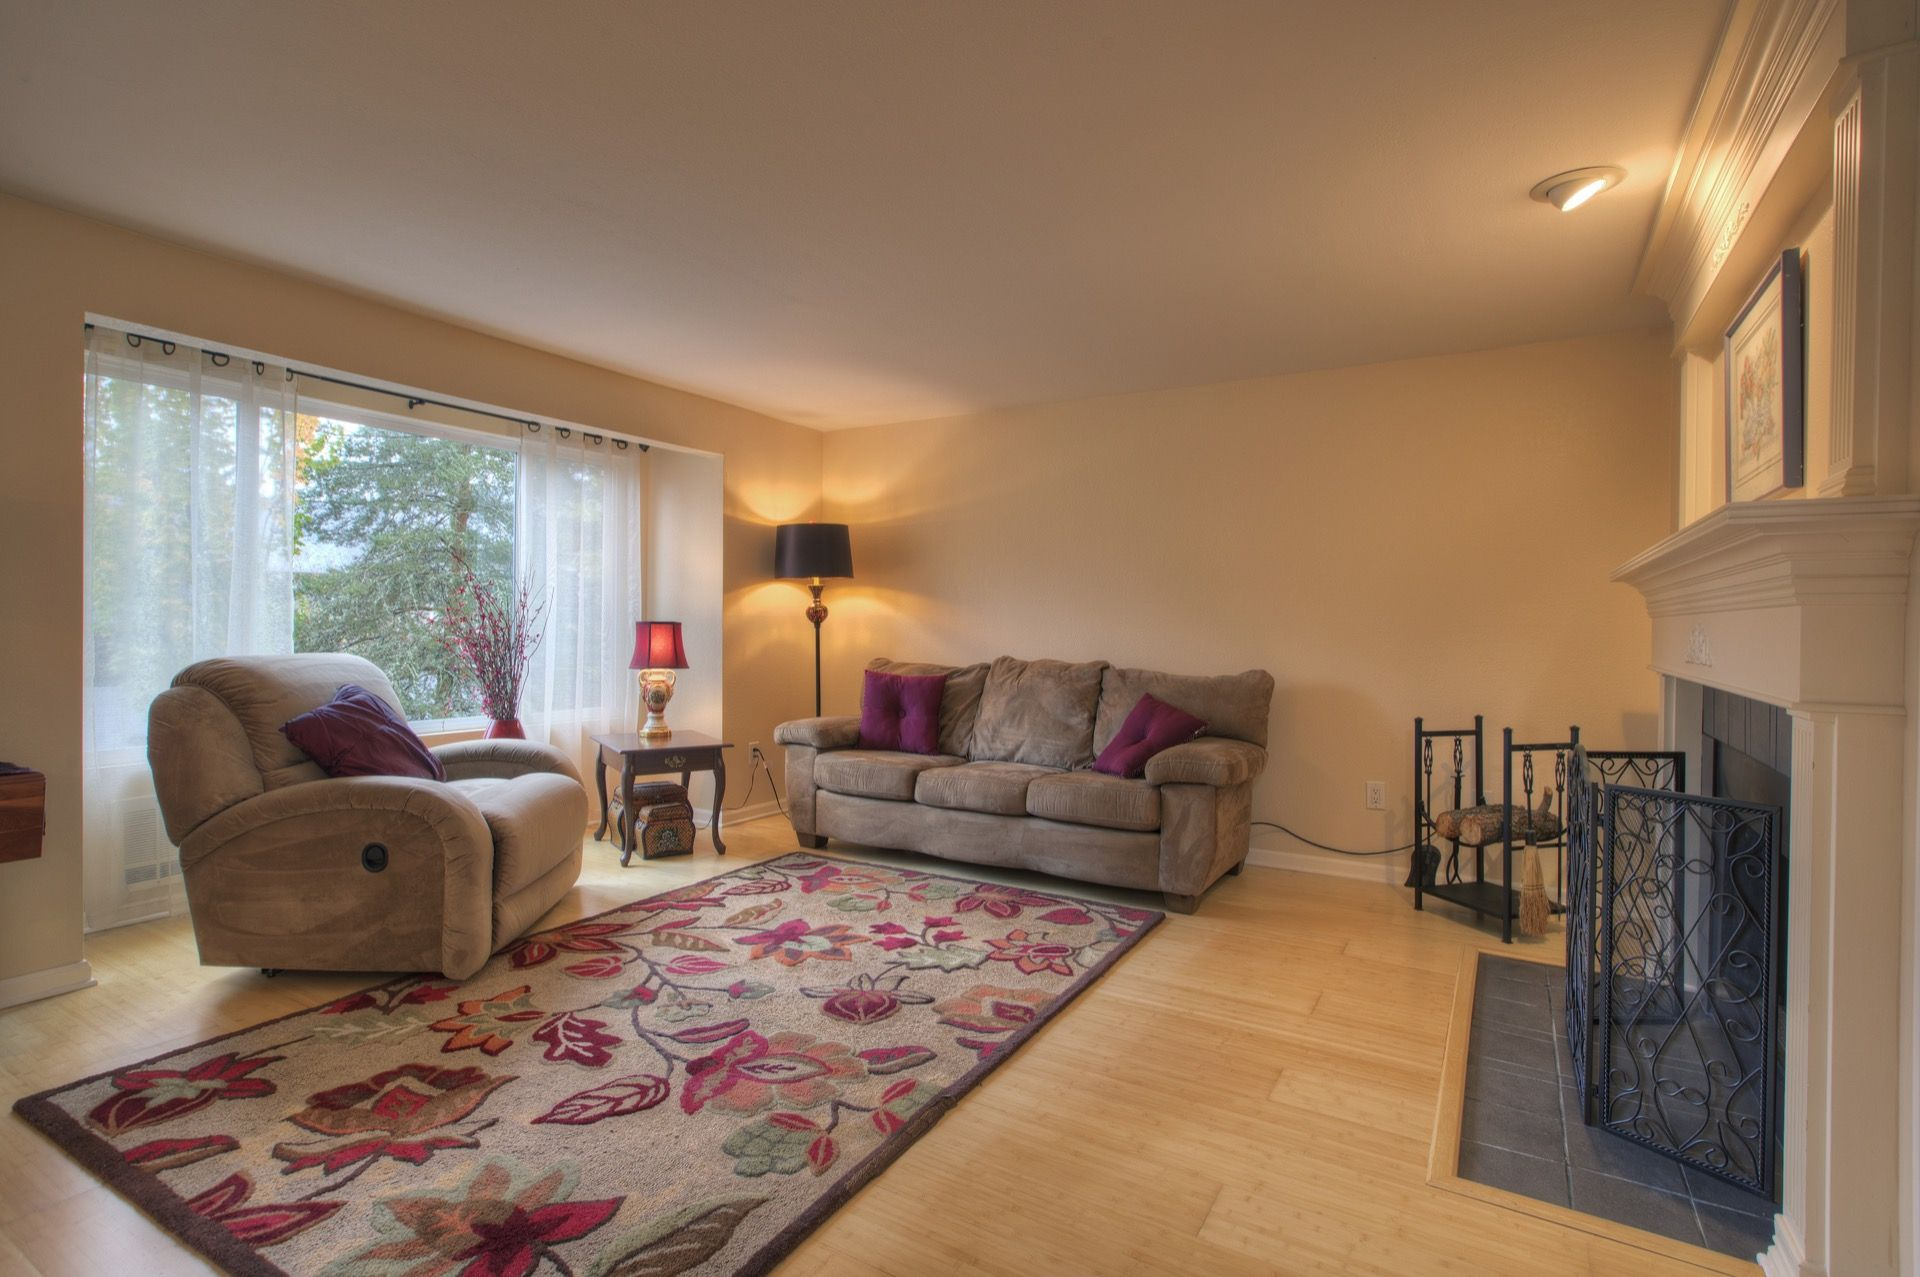 1 bedroom plus loft  PRIME LOCATION in downtown Issaquah Pristine Ridgebrook end unit